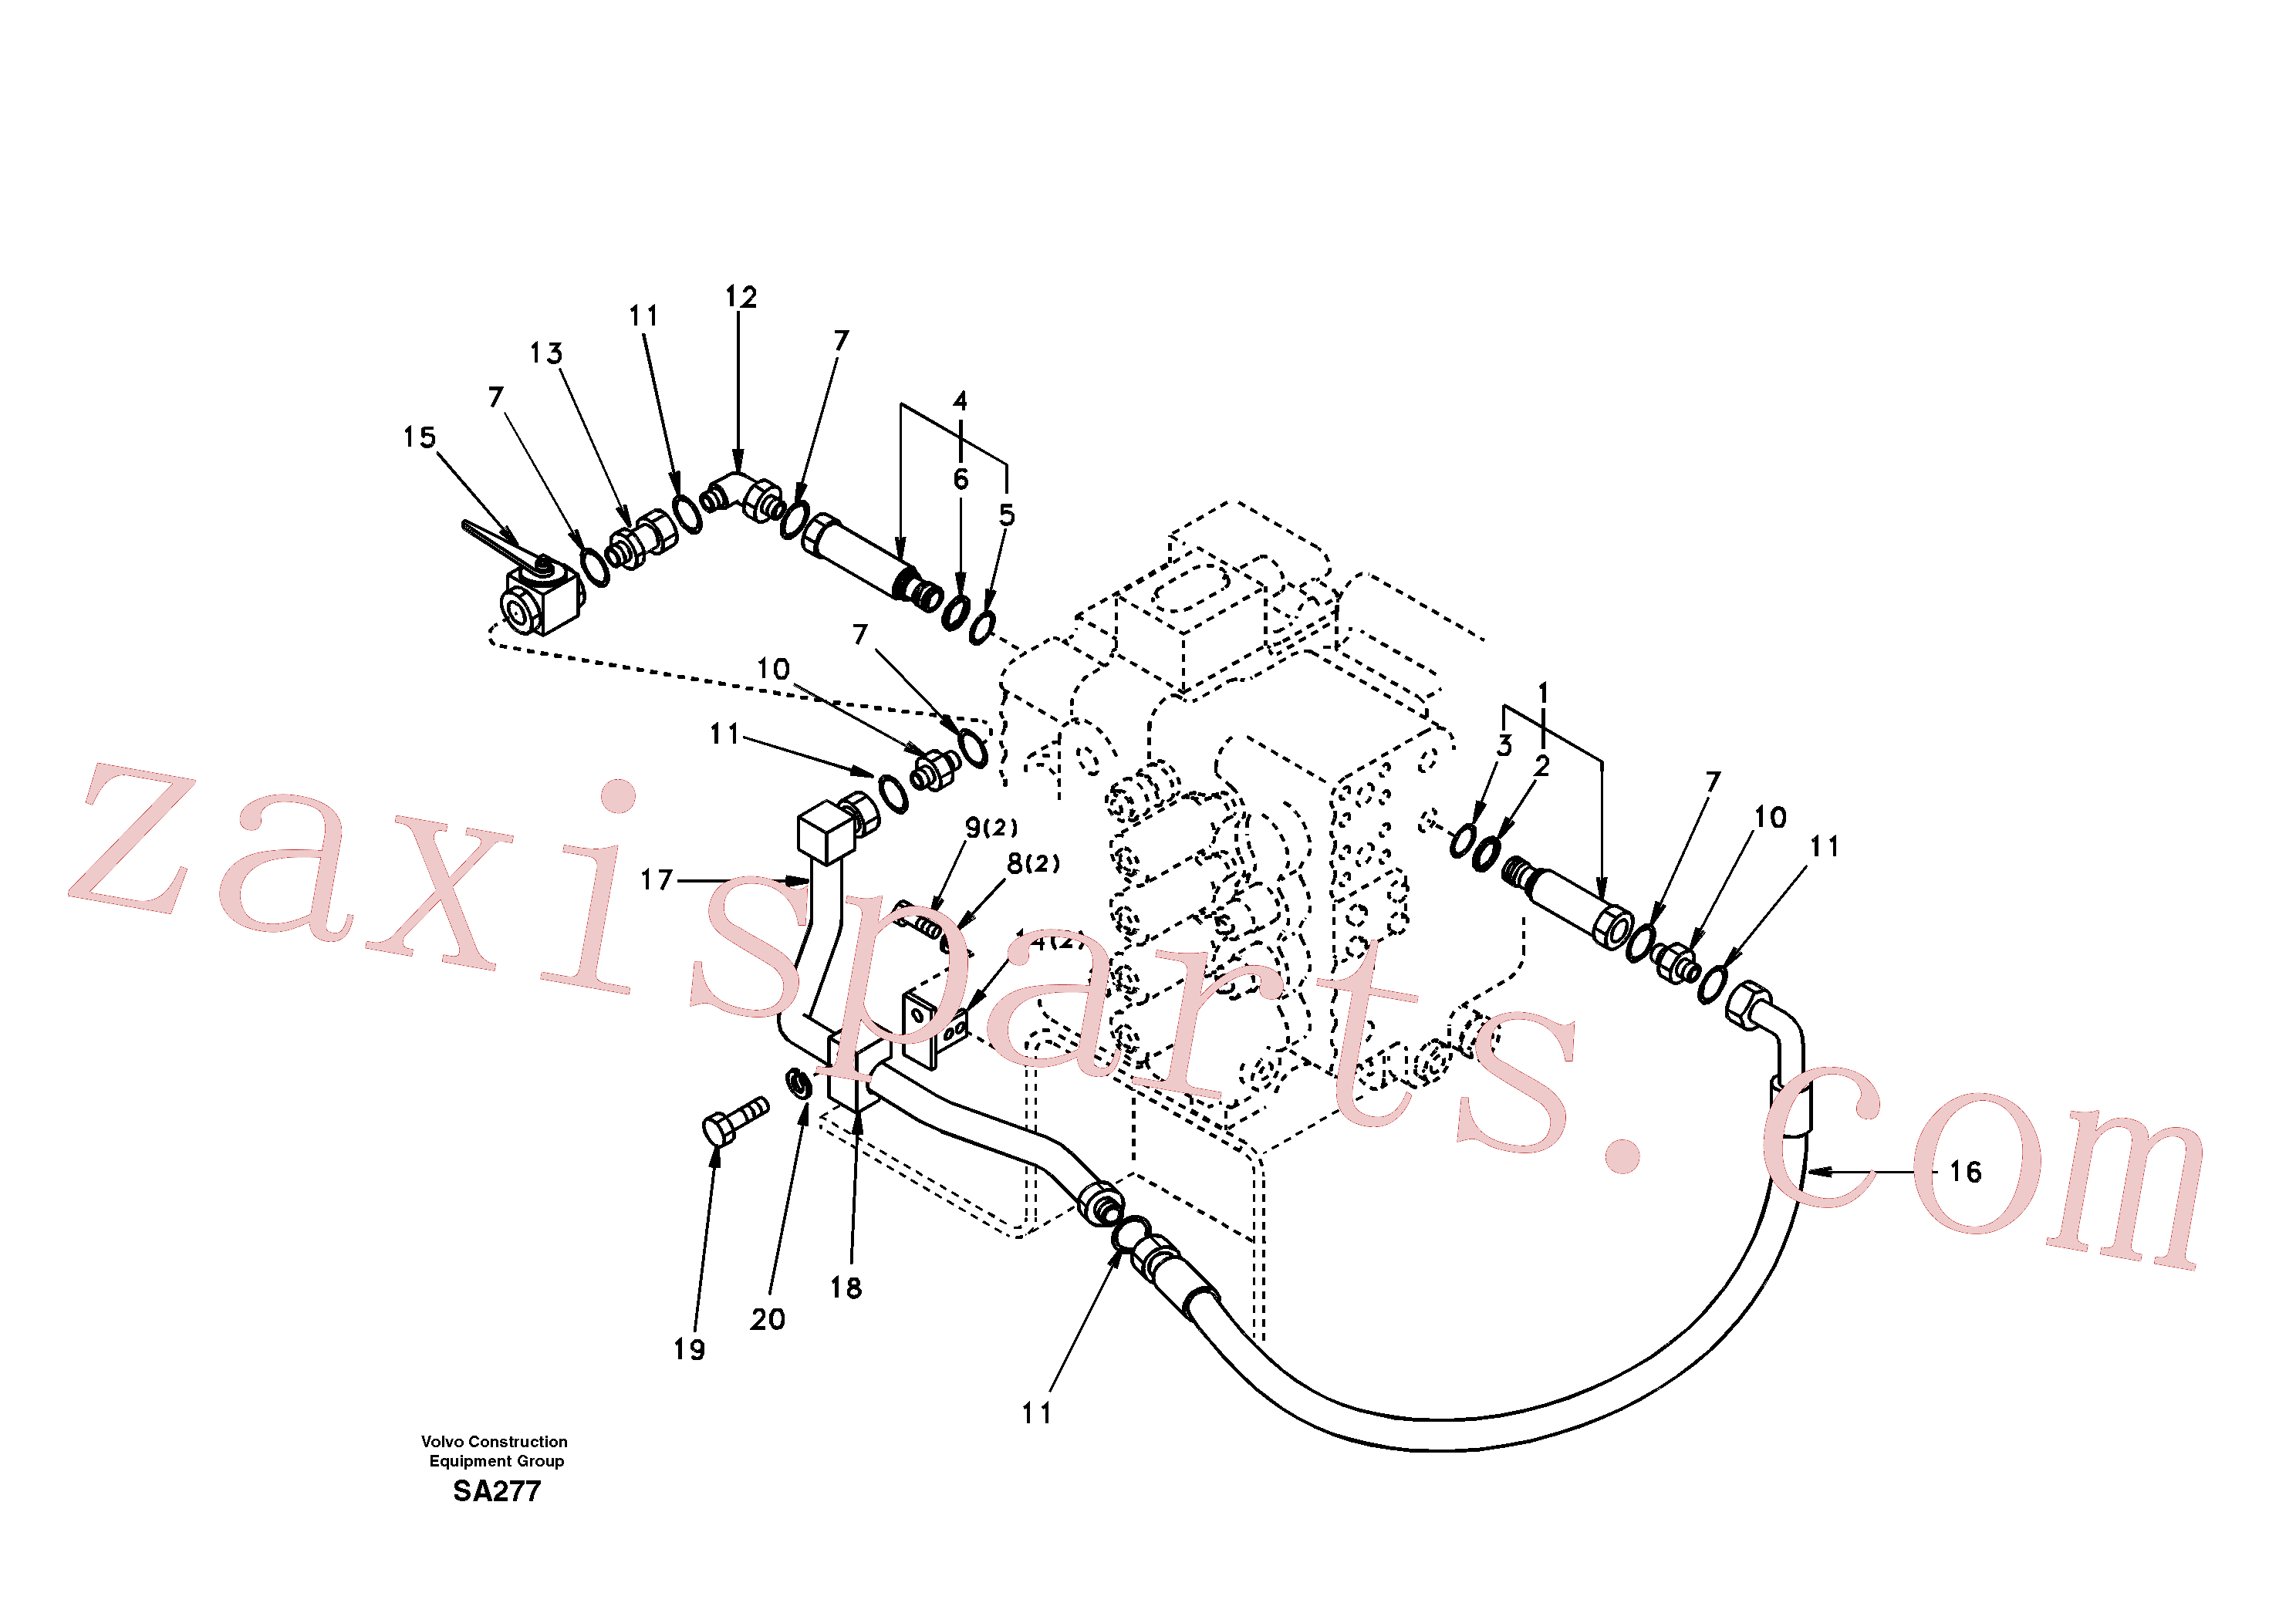 SA9372-42835 for Volvo Working hydraulic, hammer and shear for 2nd pump flow(SA277 assembly)